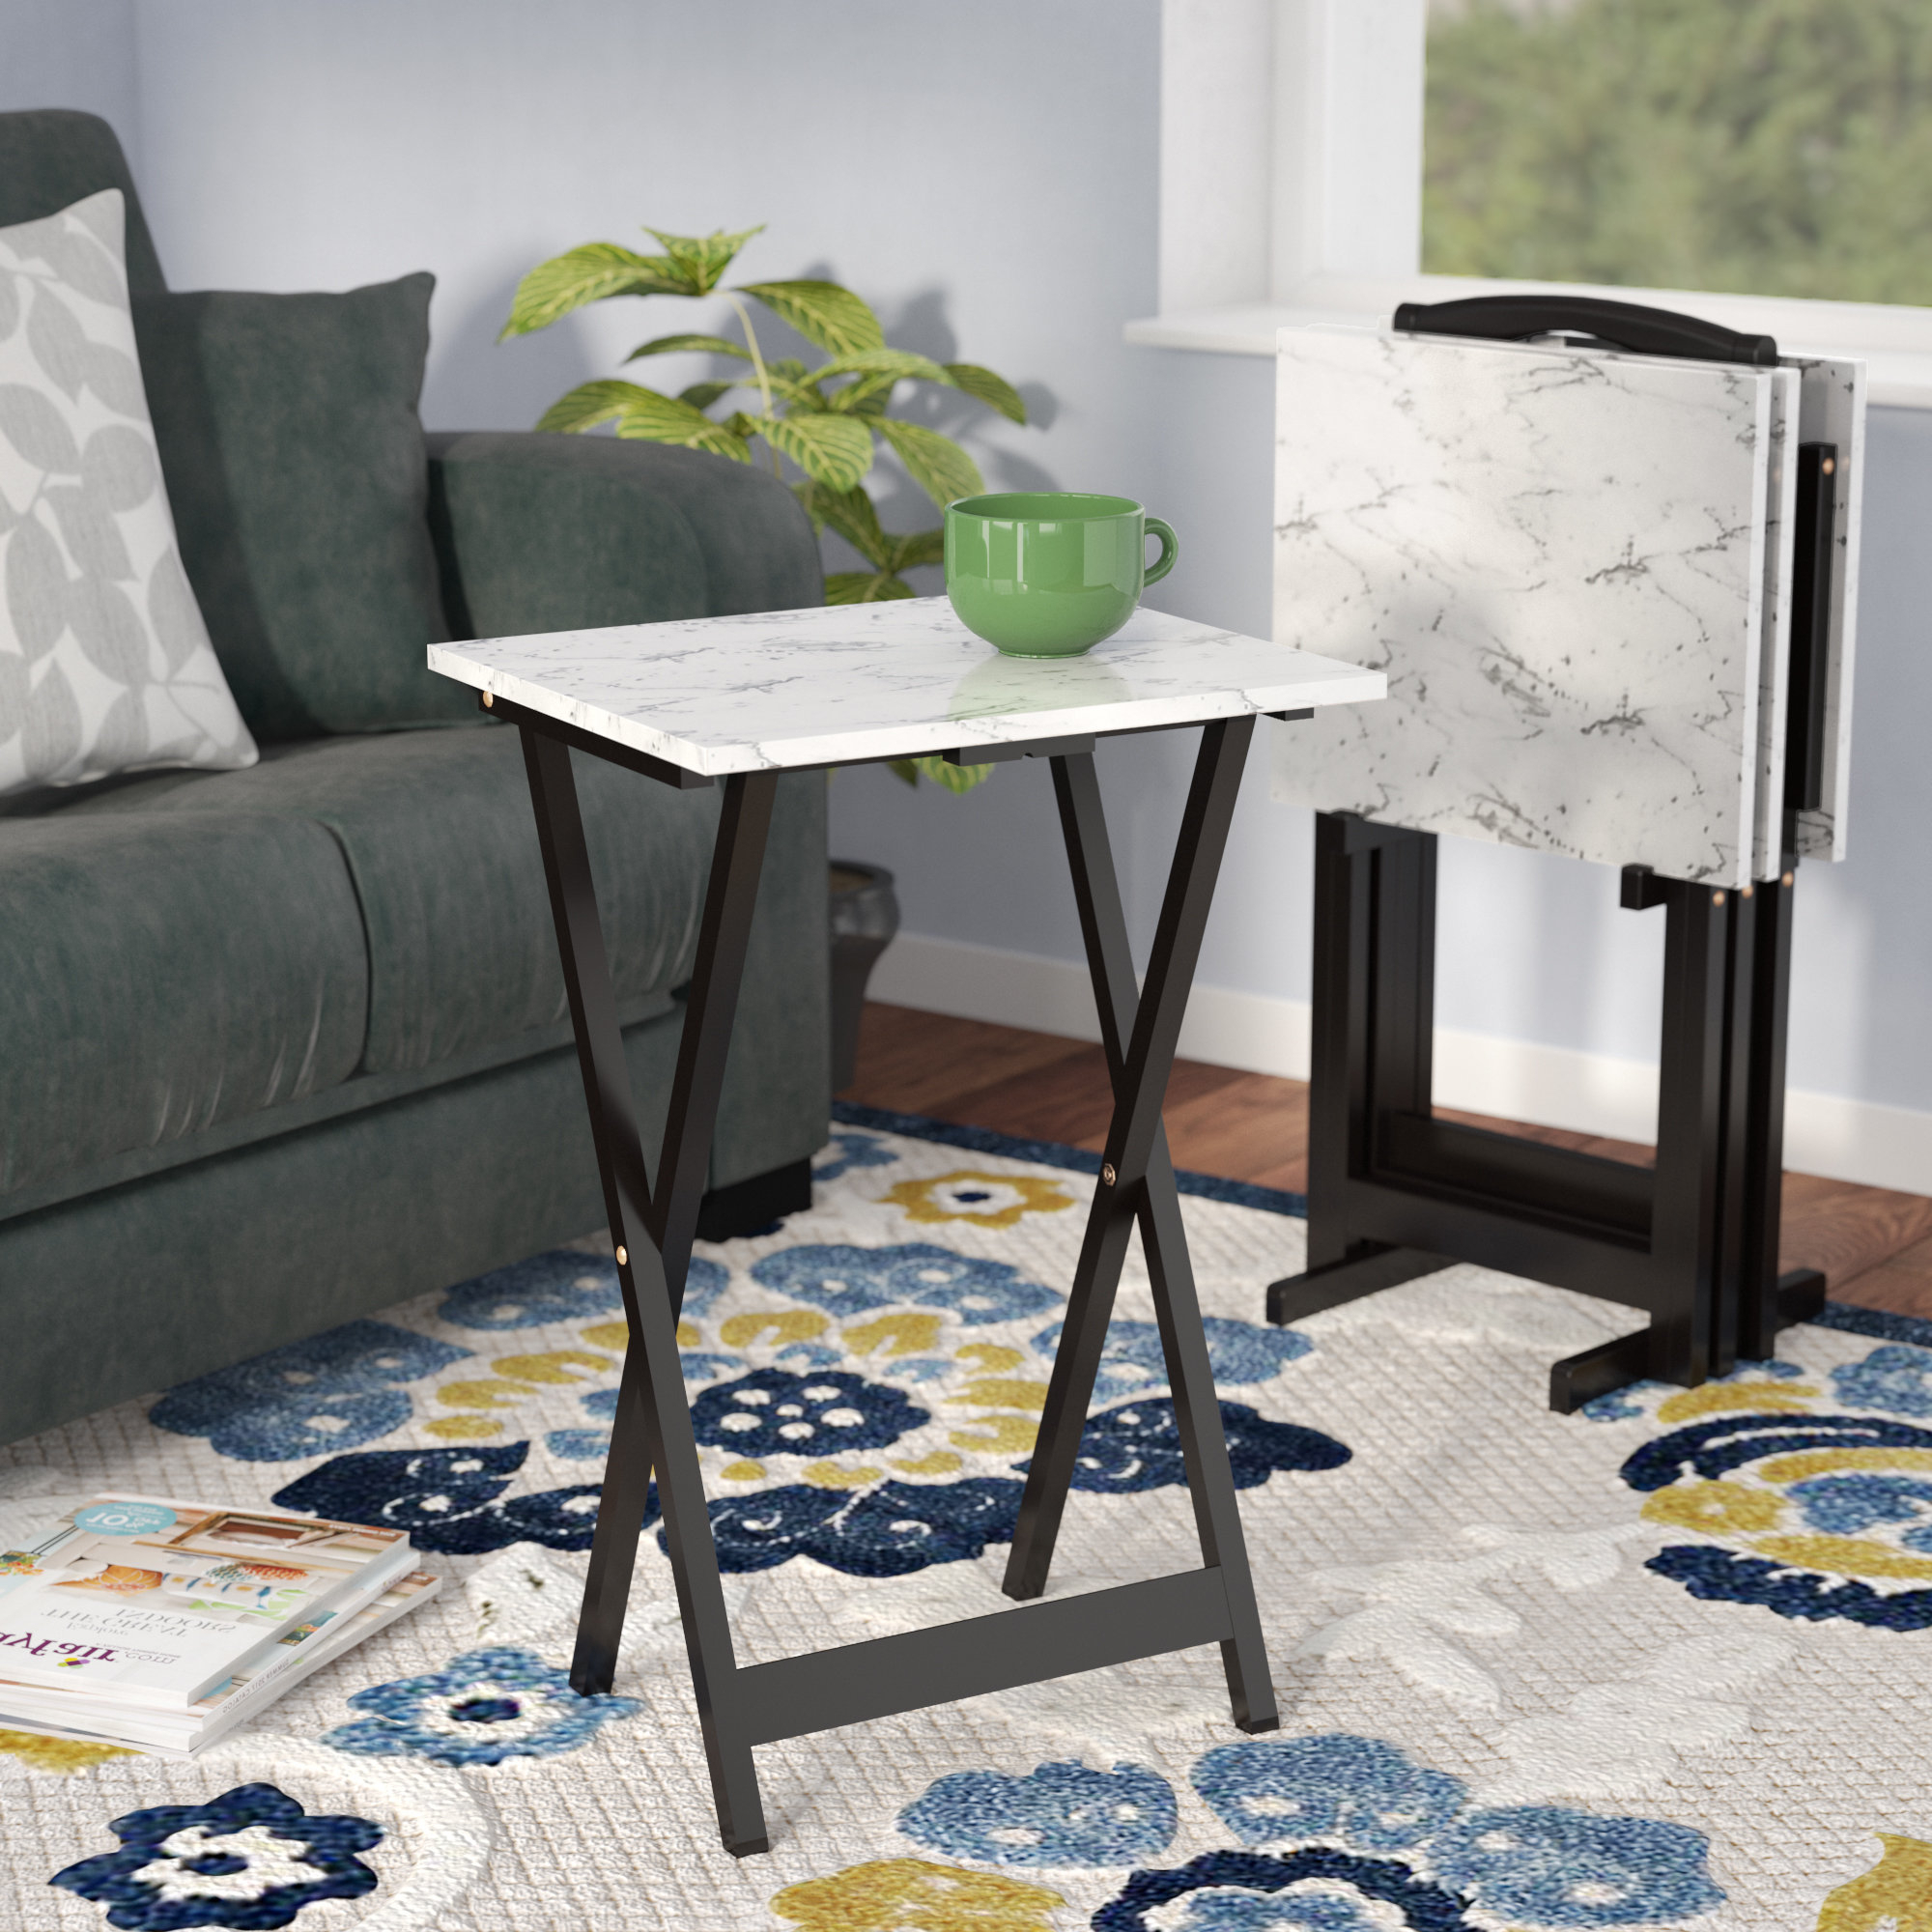 Most Up To Date Folding Tv Trays With Stand Intended For Tv Trays You'll Love (View 13 of 20)